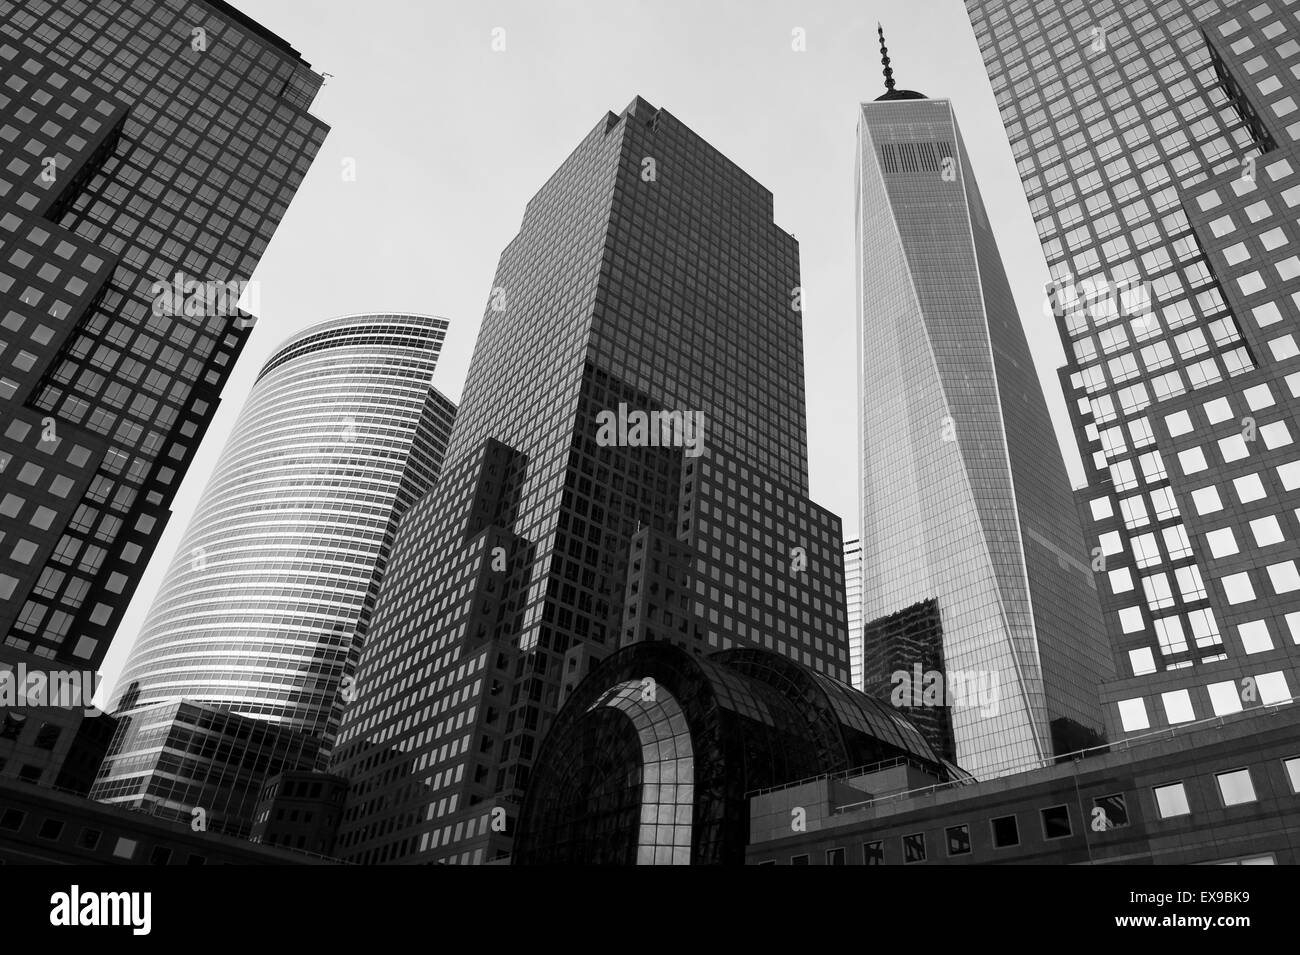 NEW YORK CITY, USA - JULY 05, 2015: Downtown Manhattan skyline featuring the World Financial Center and One World - Stock Image